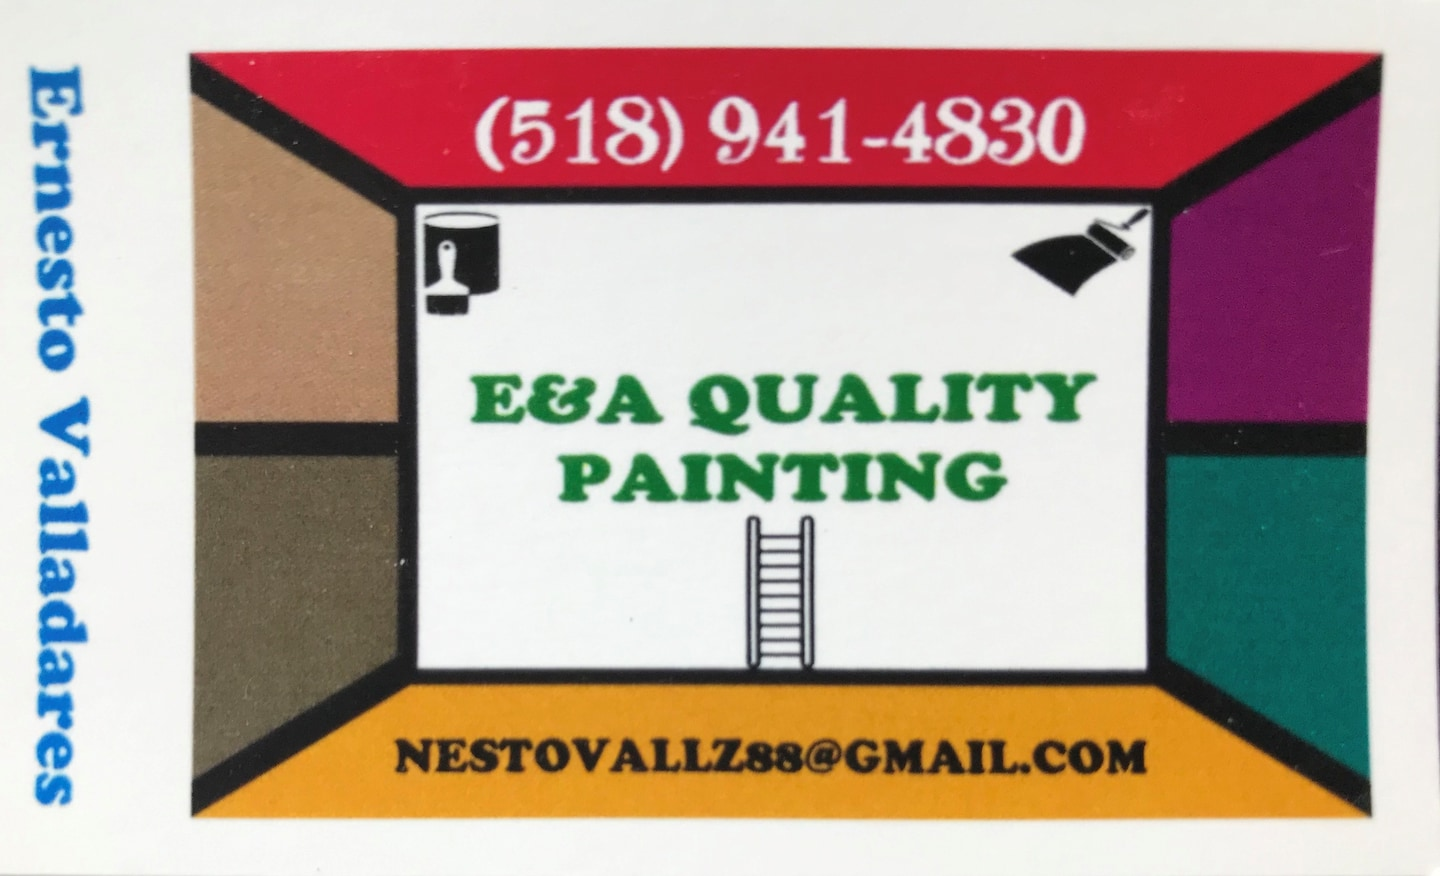 E&A Quality Painting